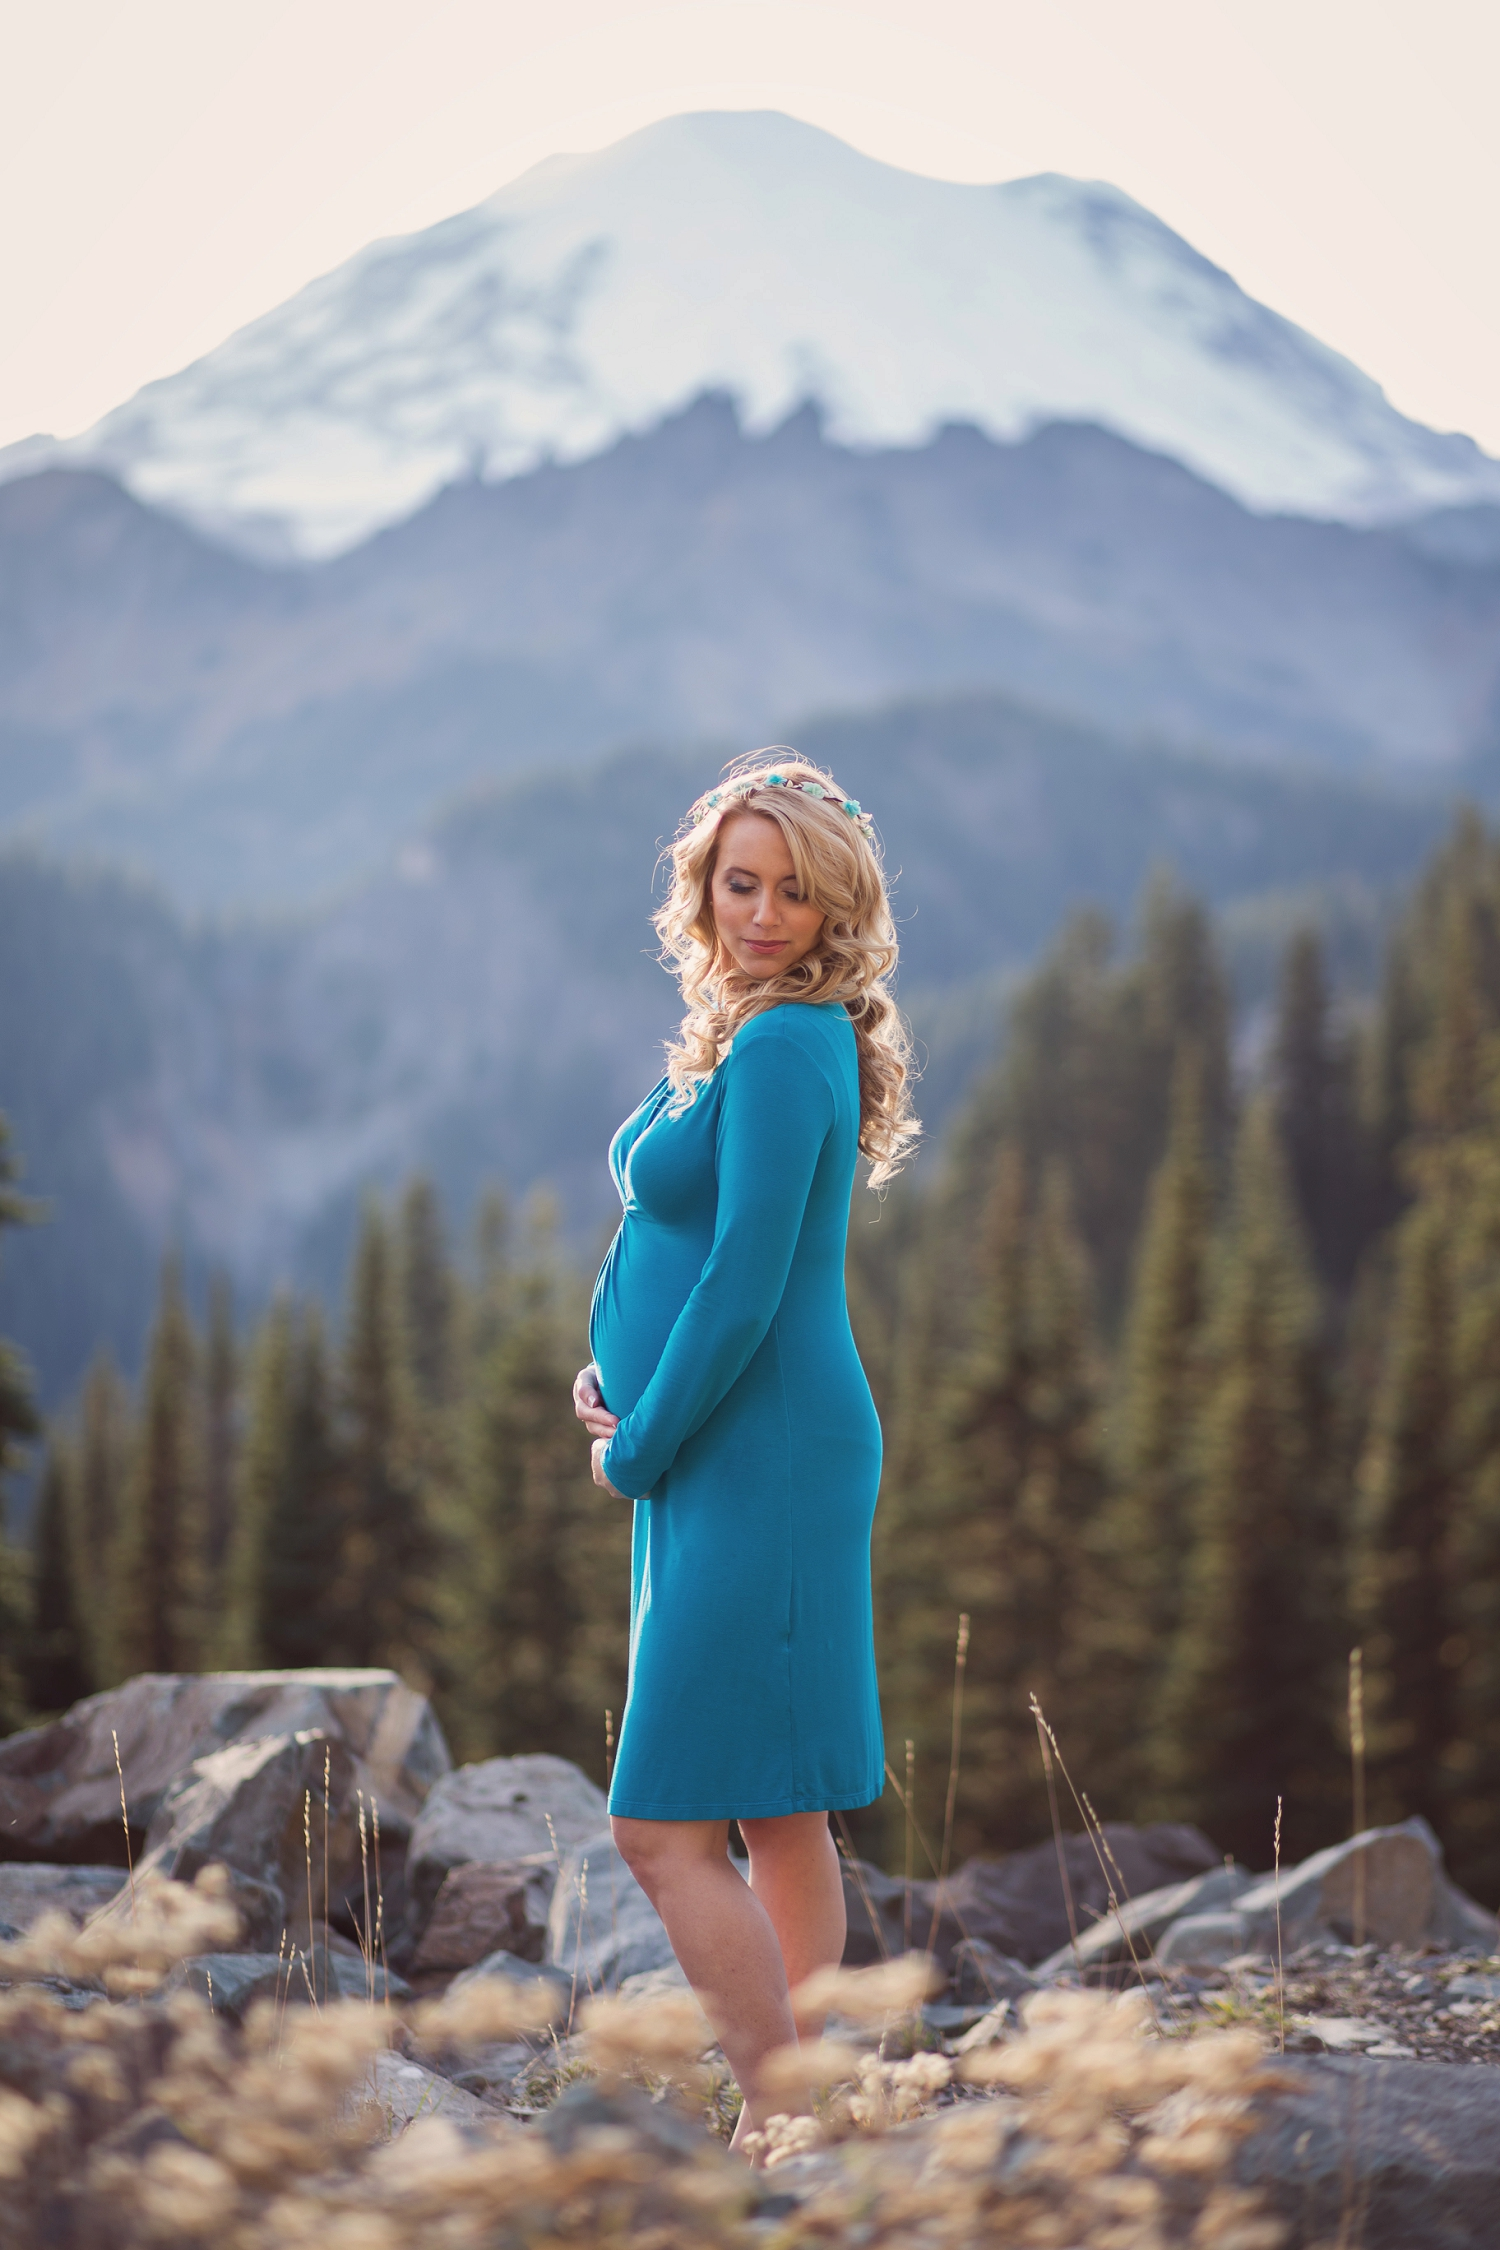 Mt_rainier_maternity_photographer_4_vannessa_kralovic.jpg